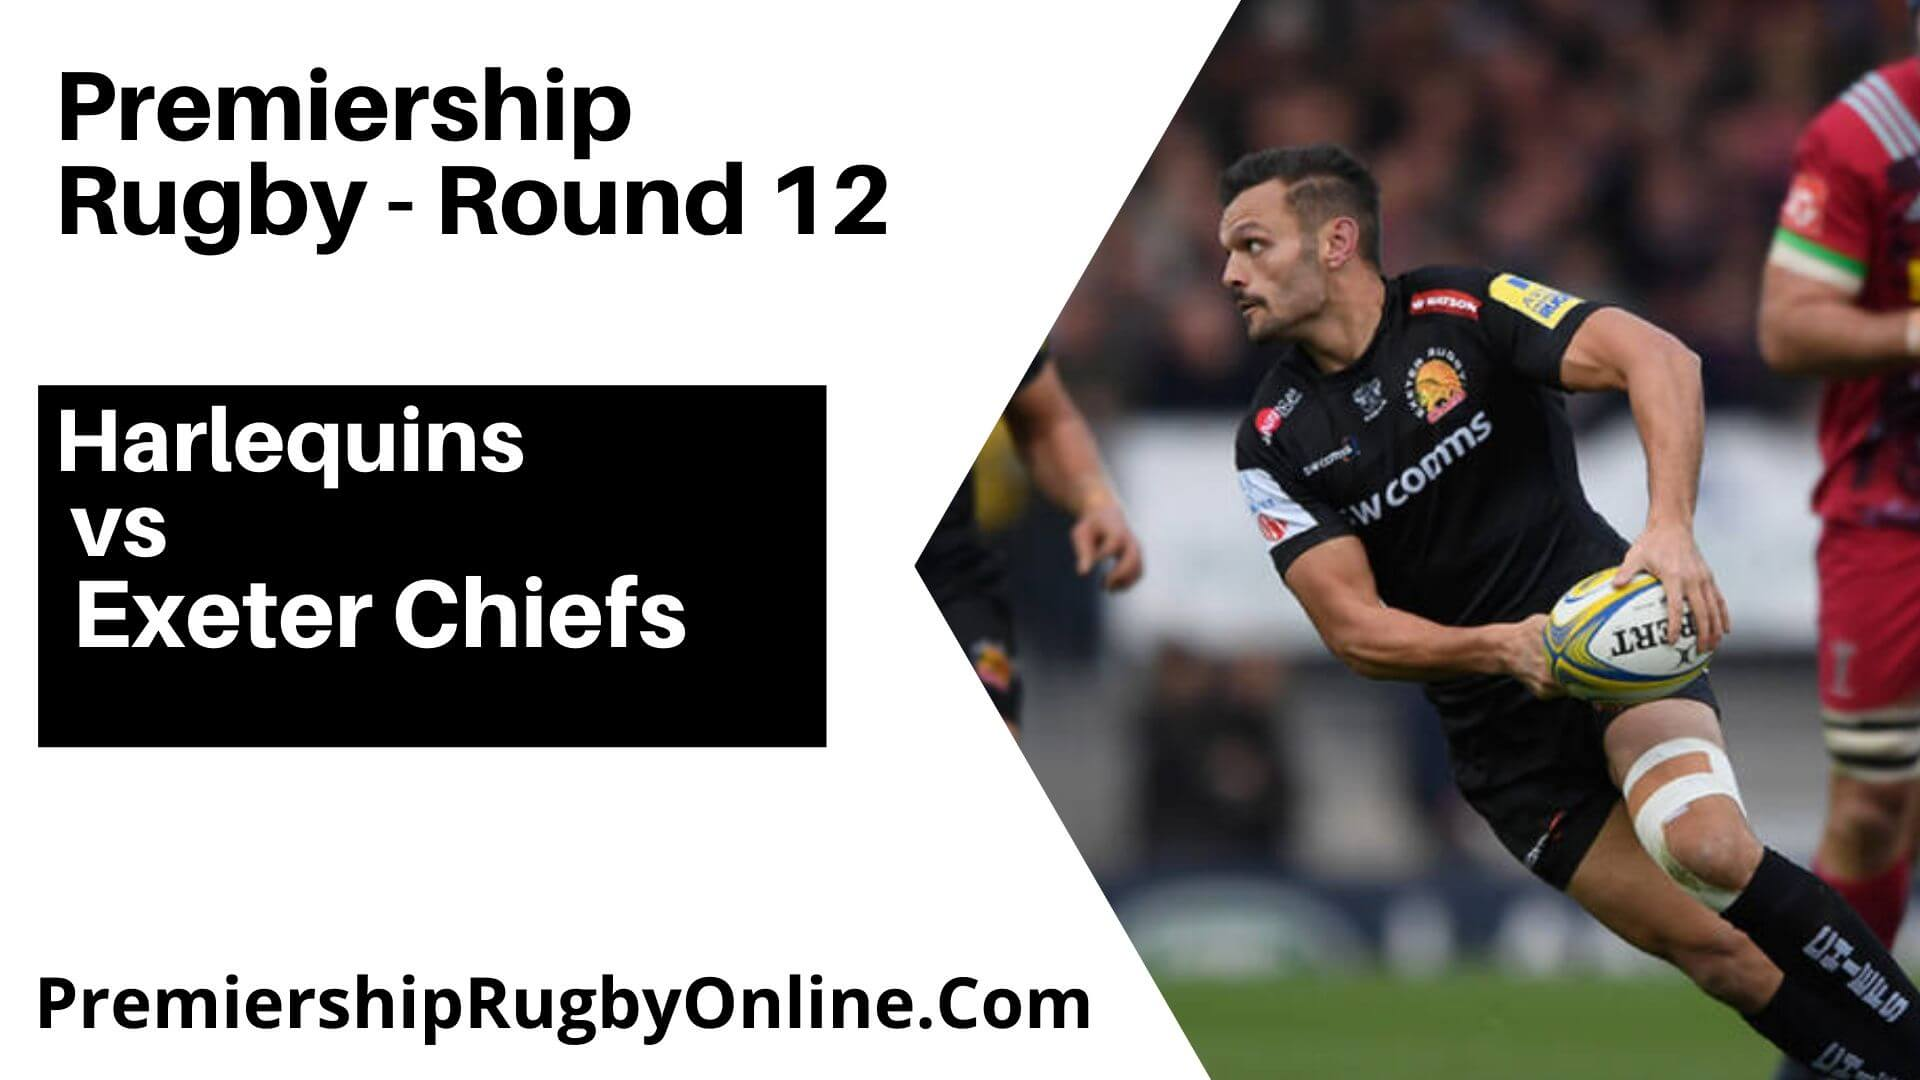 Harlequins vs Exeter Chiefs Live Stream | Round 12